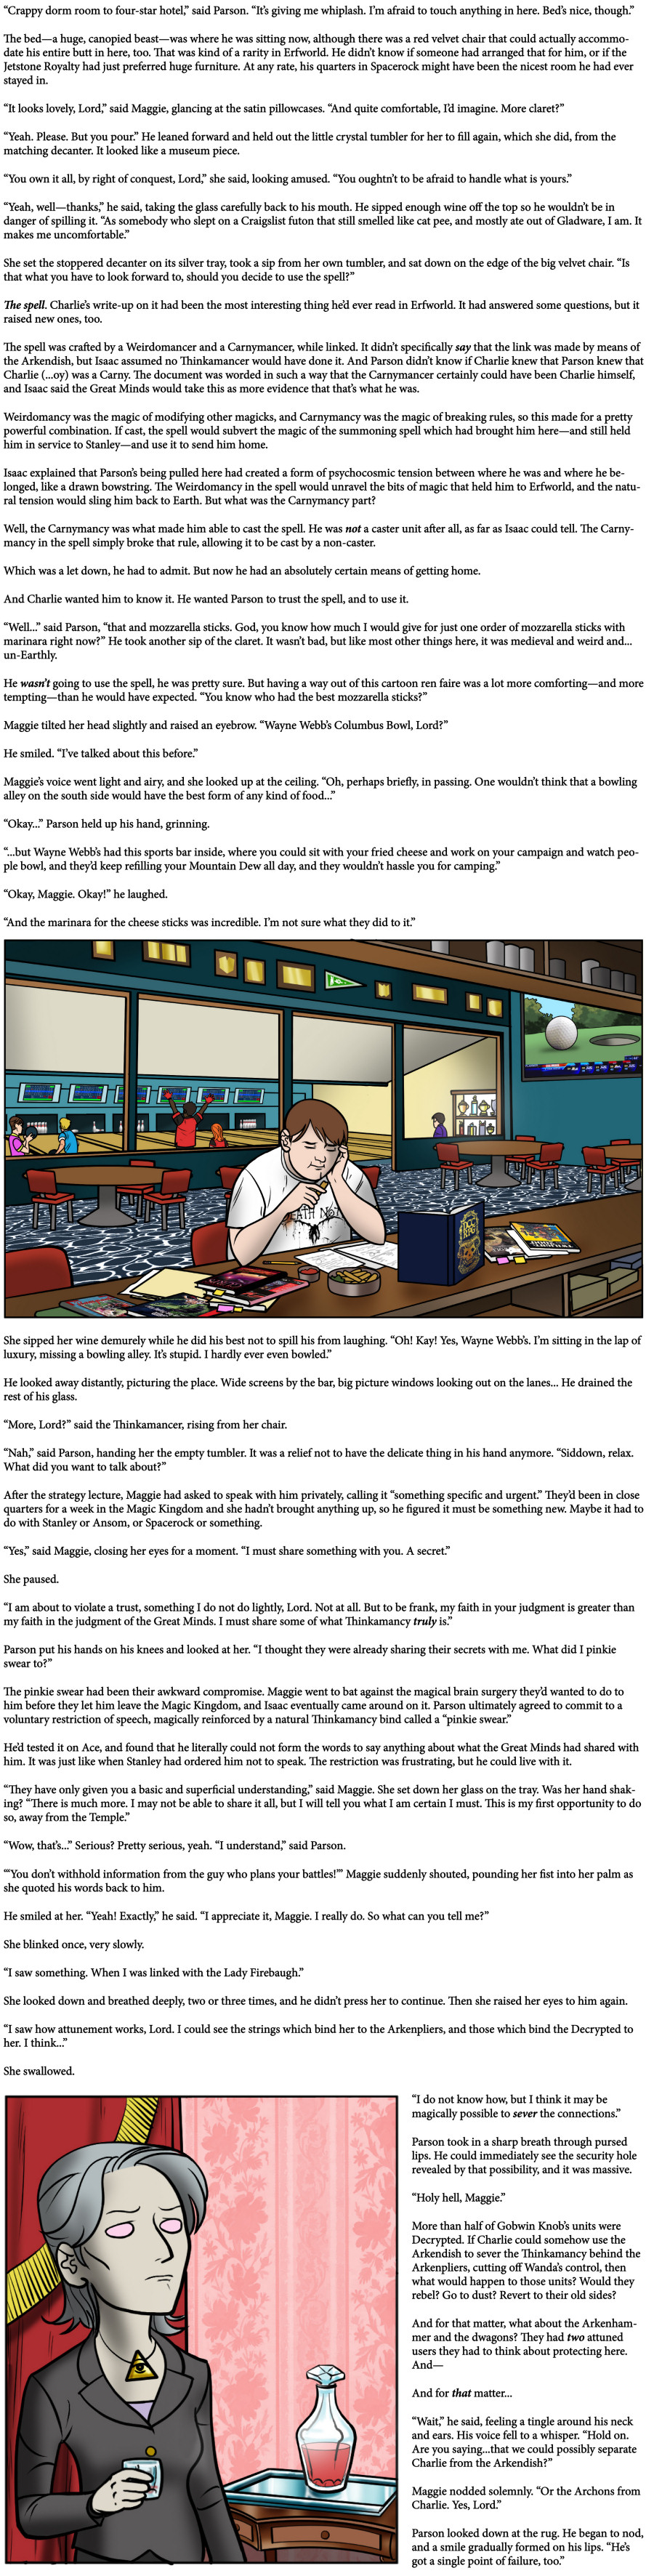 Comic - Book 3 - Page 37